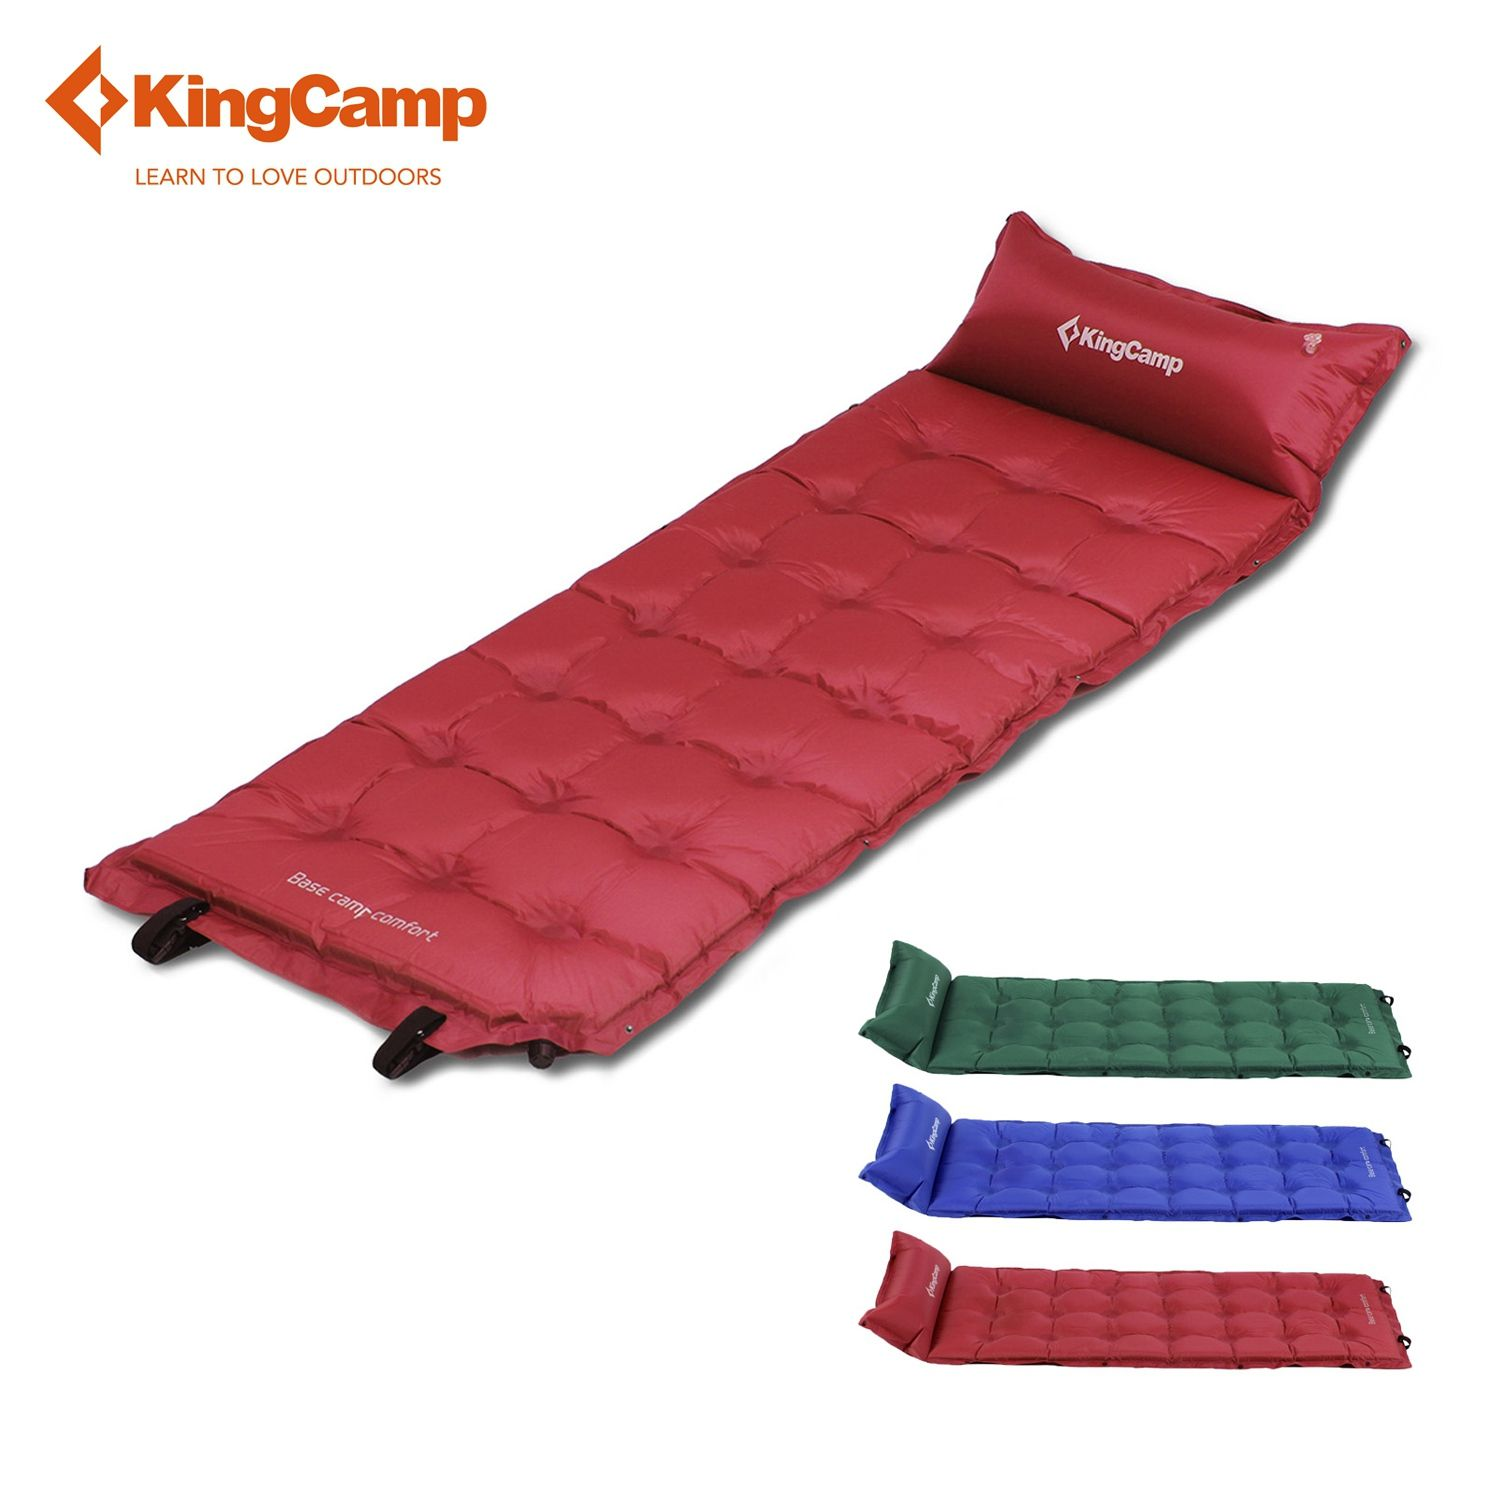 KingCamp Comfort Self-Inflating Camping Mat with Attached Pillow for Hiking Backpacking Sleeping Mats Mattress Green/Red/Blue